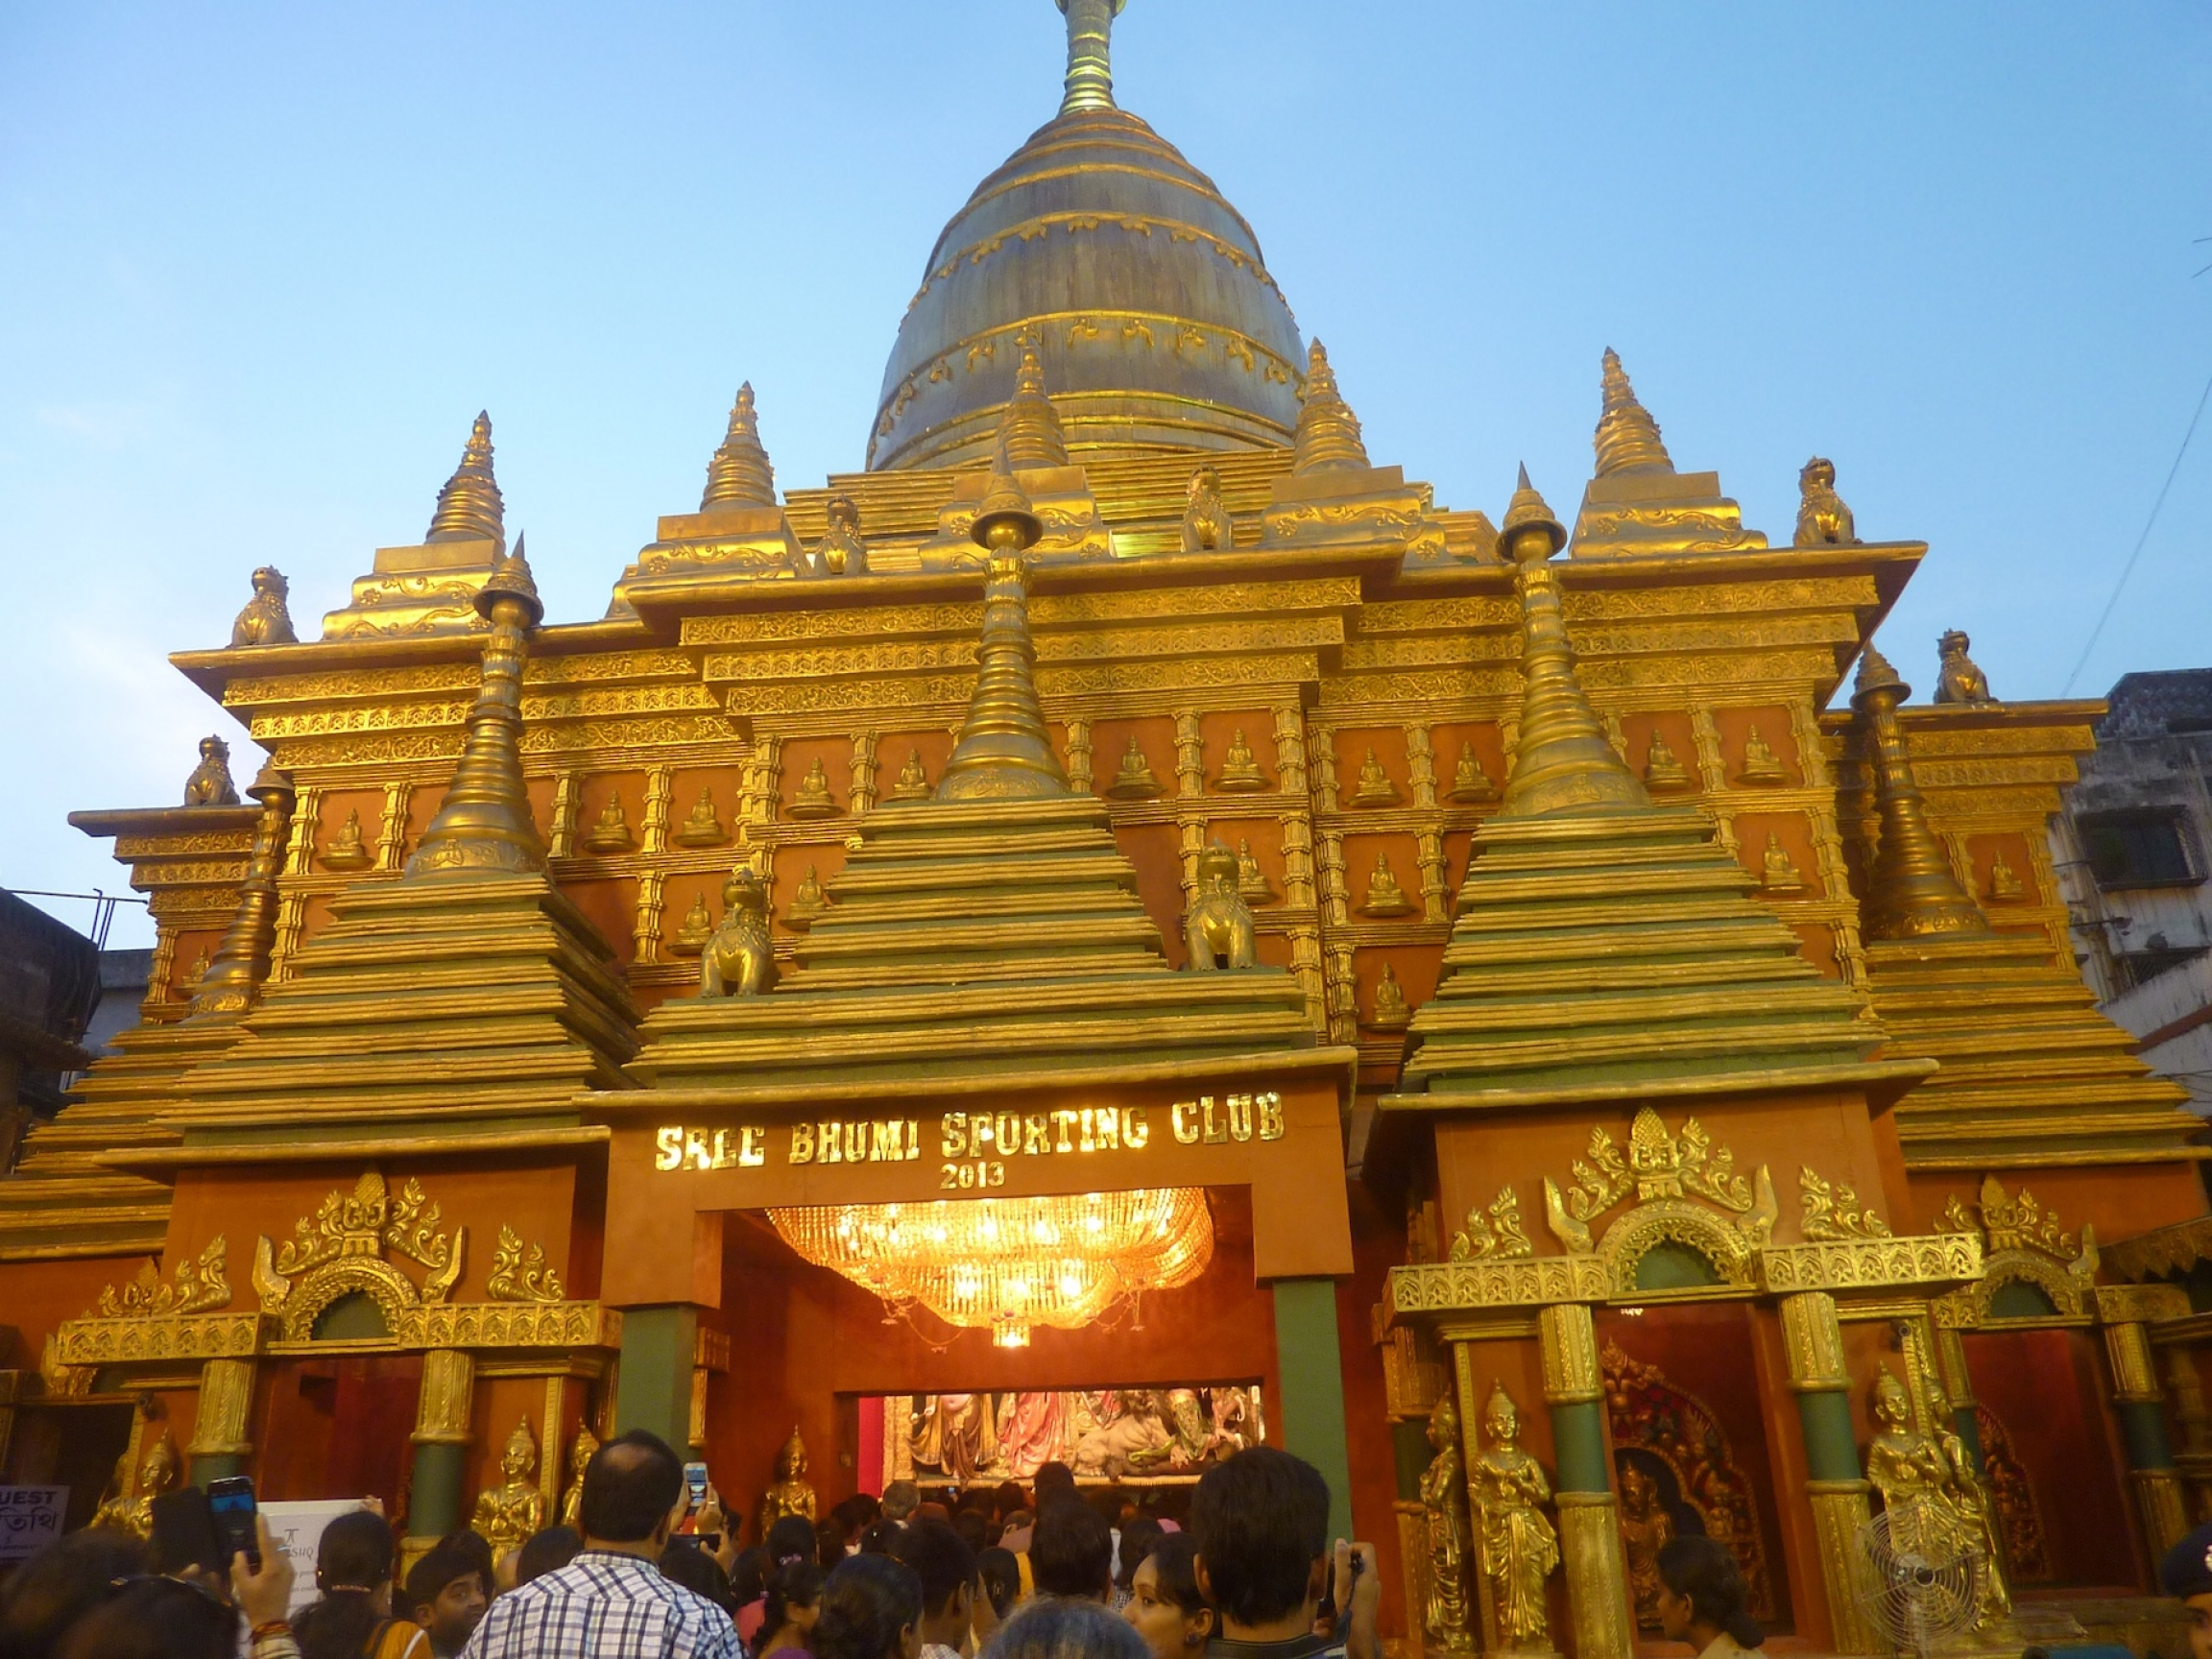 An ornate structure with golden tipped points in the shape of a Thai-style temple.